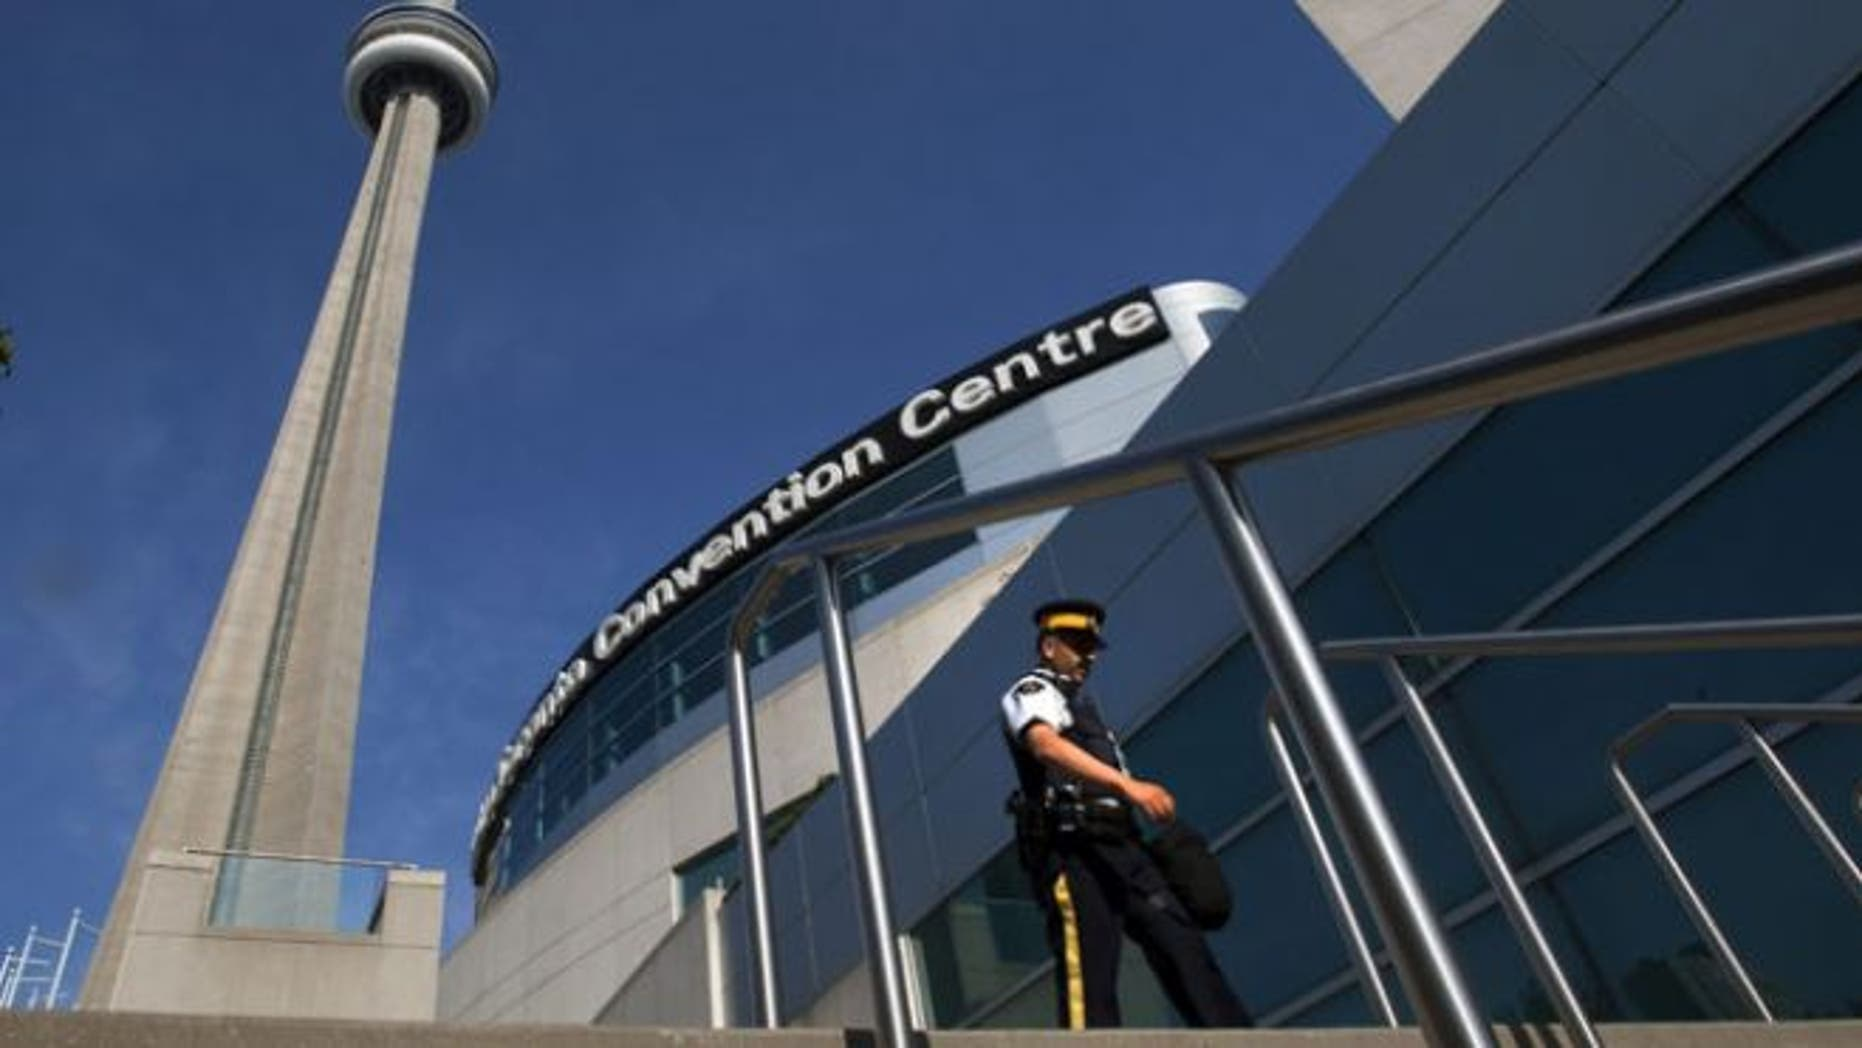 June 25, 2010: A Royal Canadian Mounted Police officer patrols outside the Metro Toronto Convention Center during the G20 summit (AP Photo/The Canadian Press, Frank Gunn)